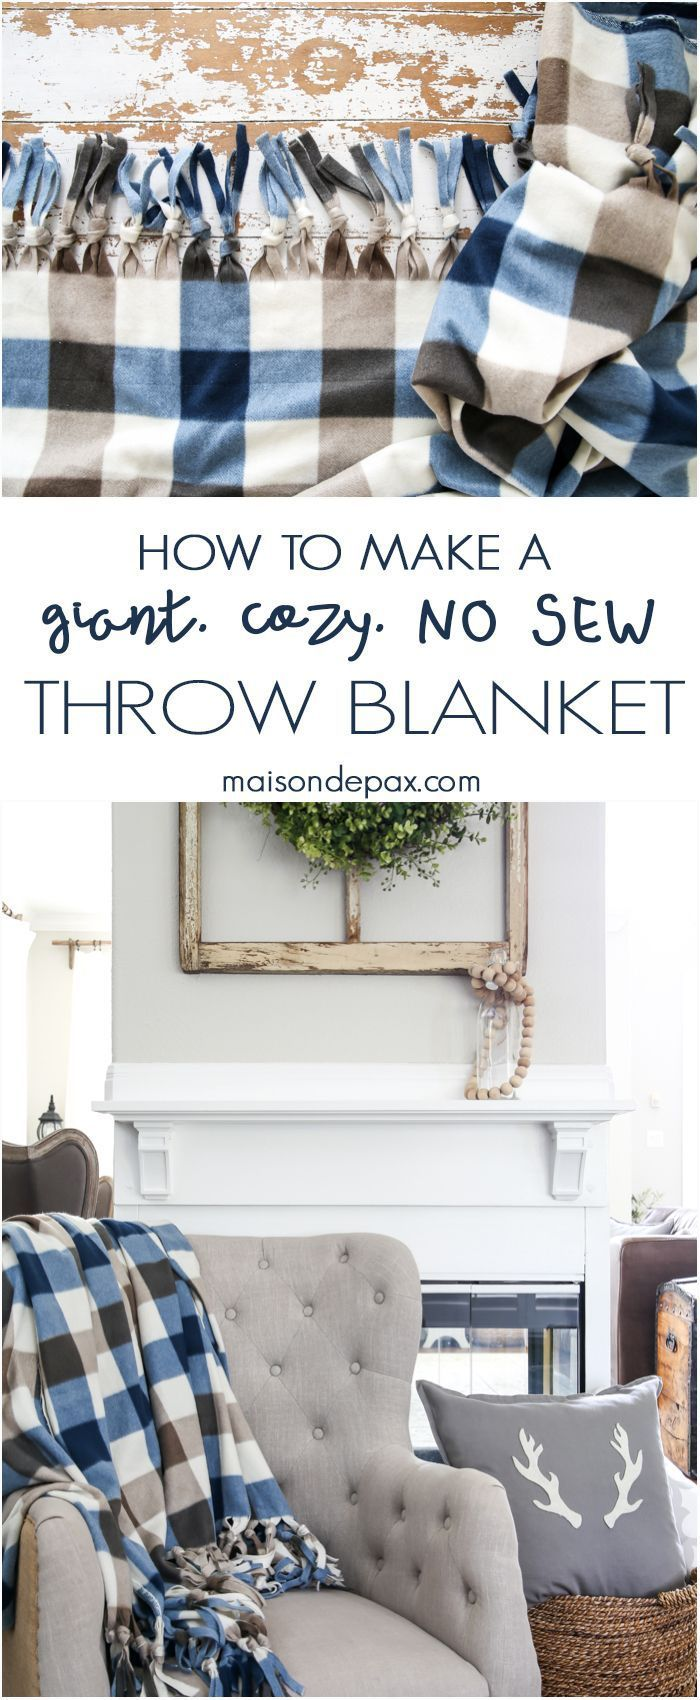 diy NO SEW throw blanket: how to make a gorgeous, cozy throw for less than $10!